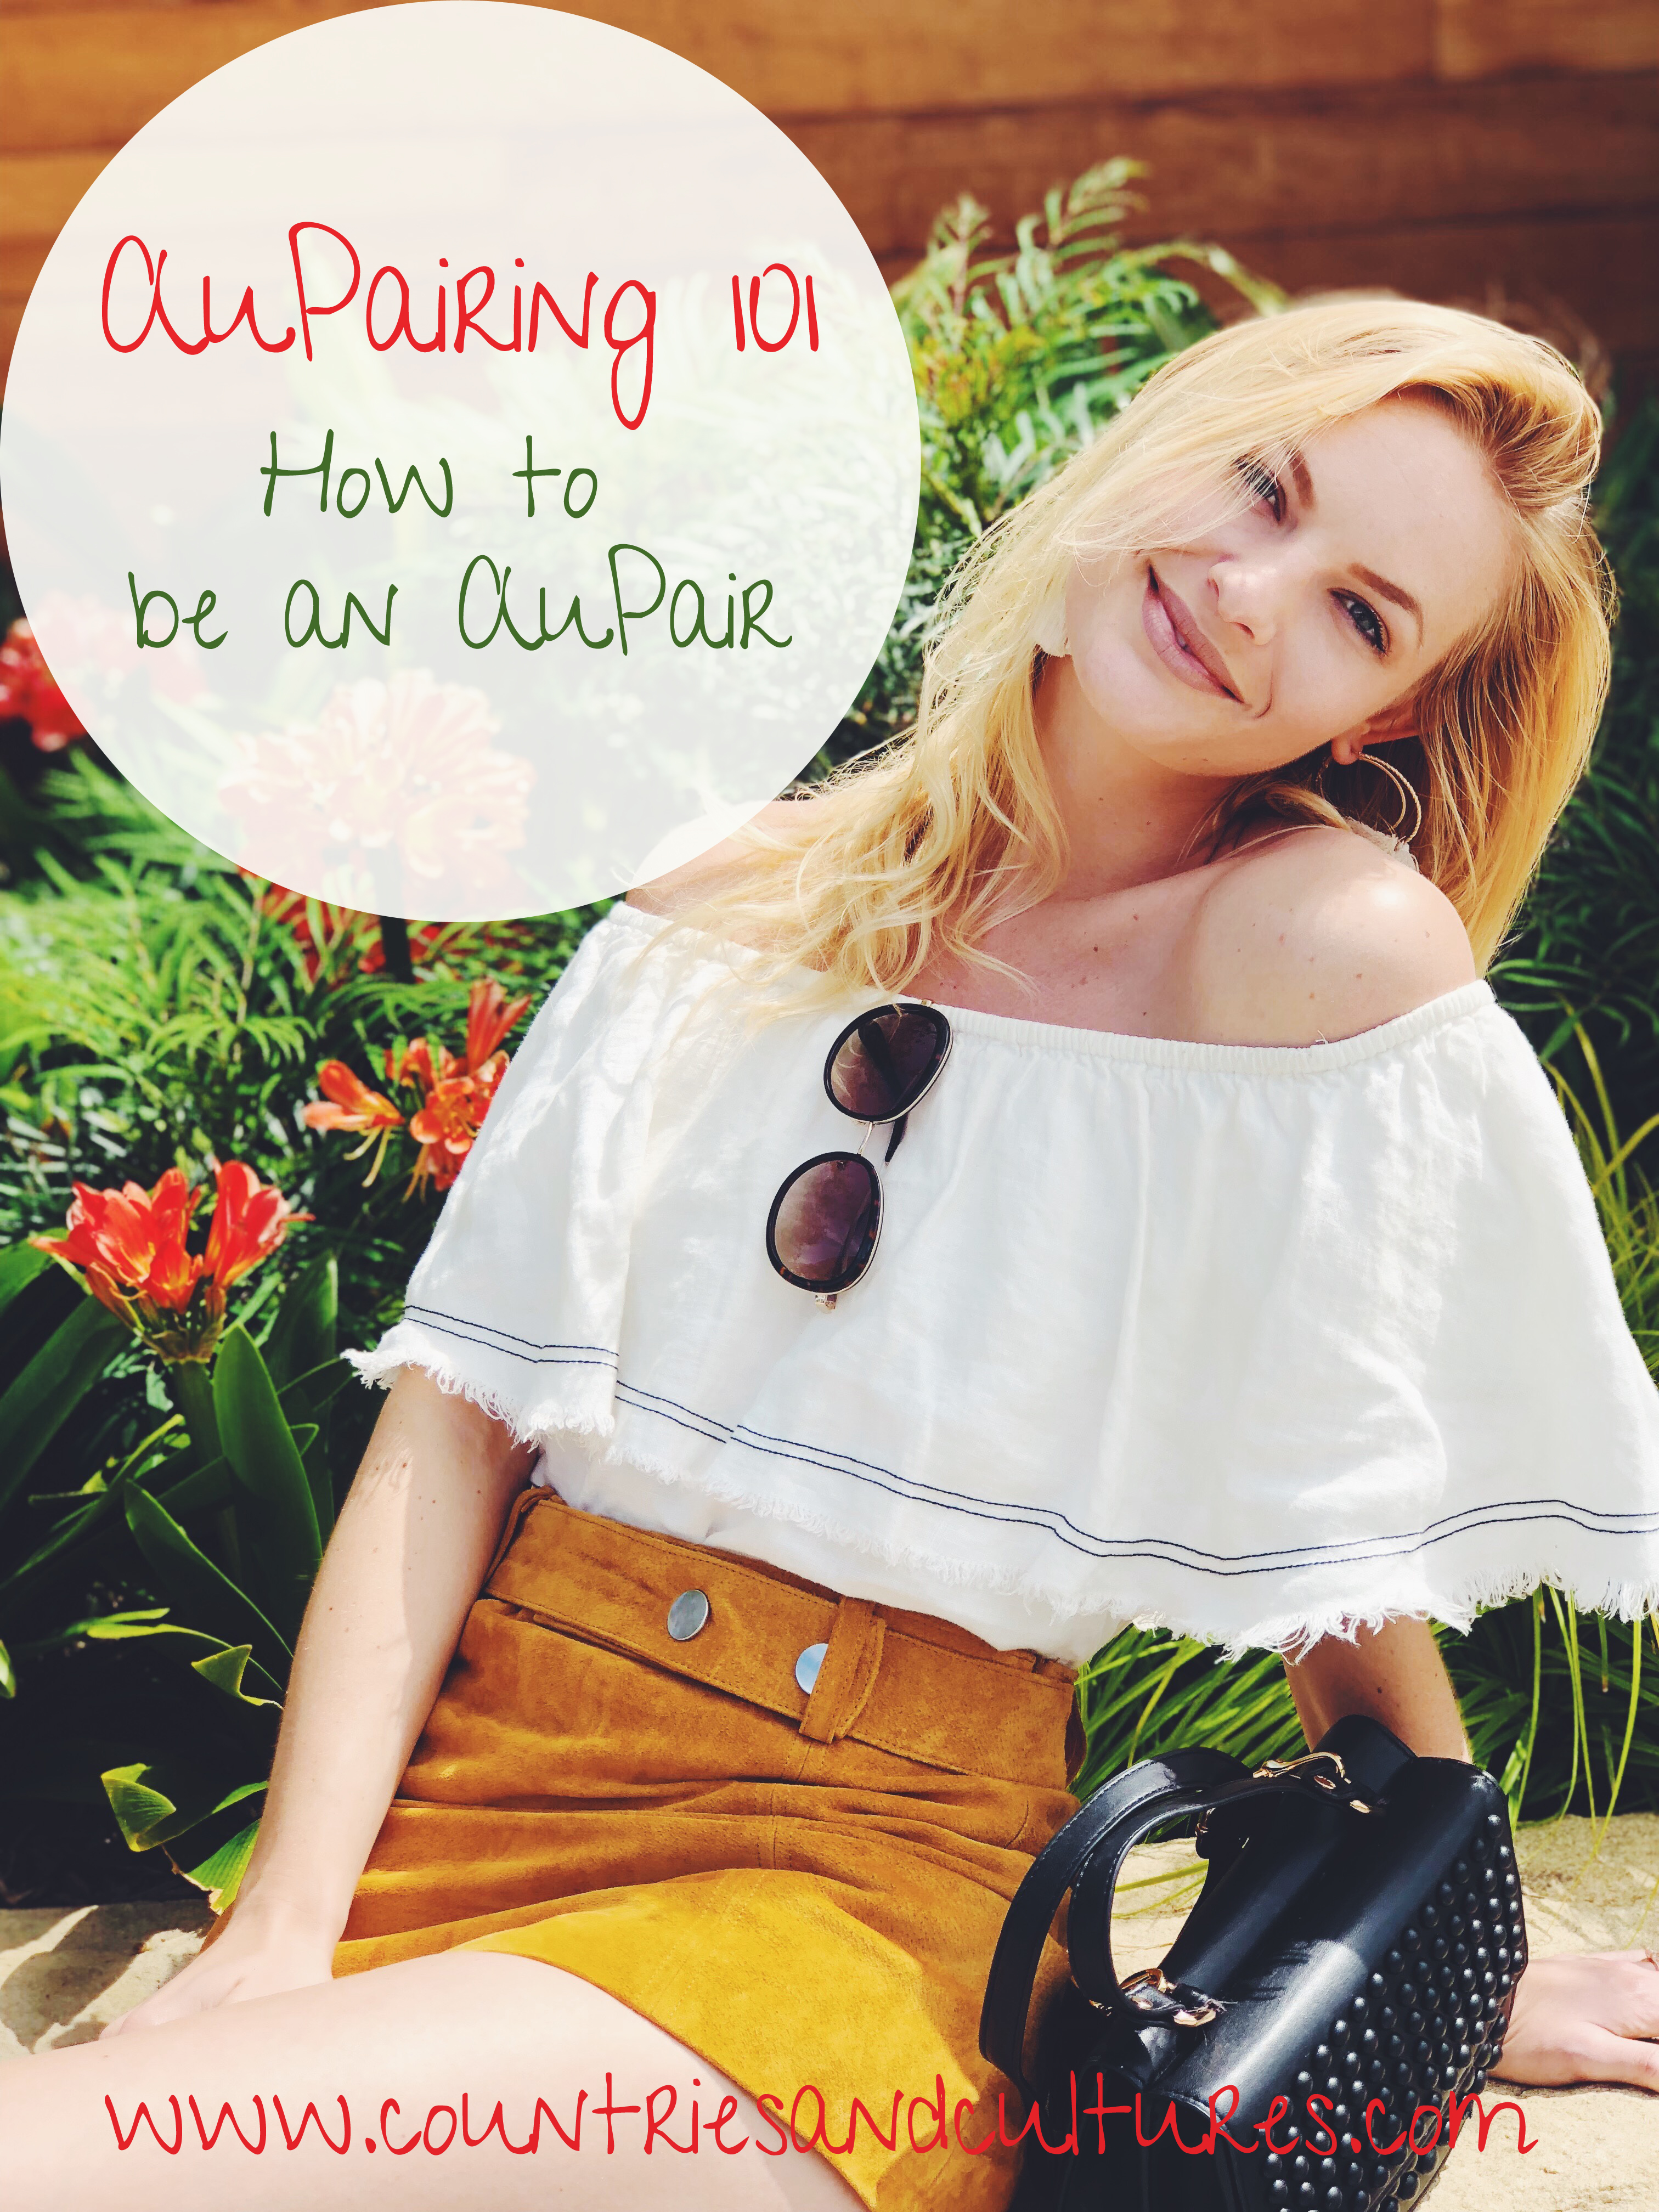 AuPairing 101 - How to be an AuPair